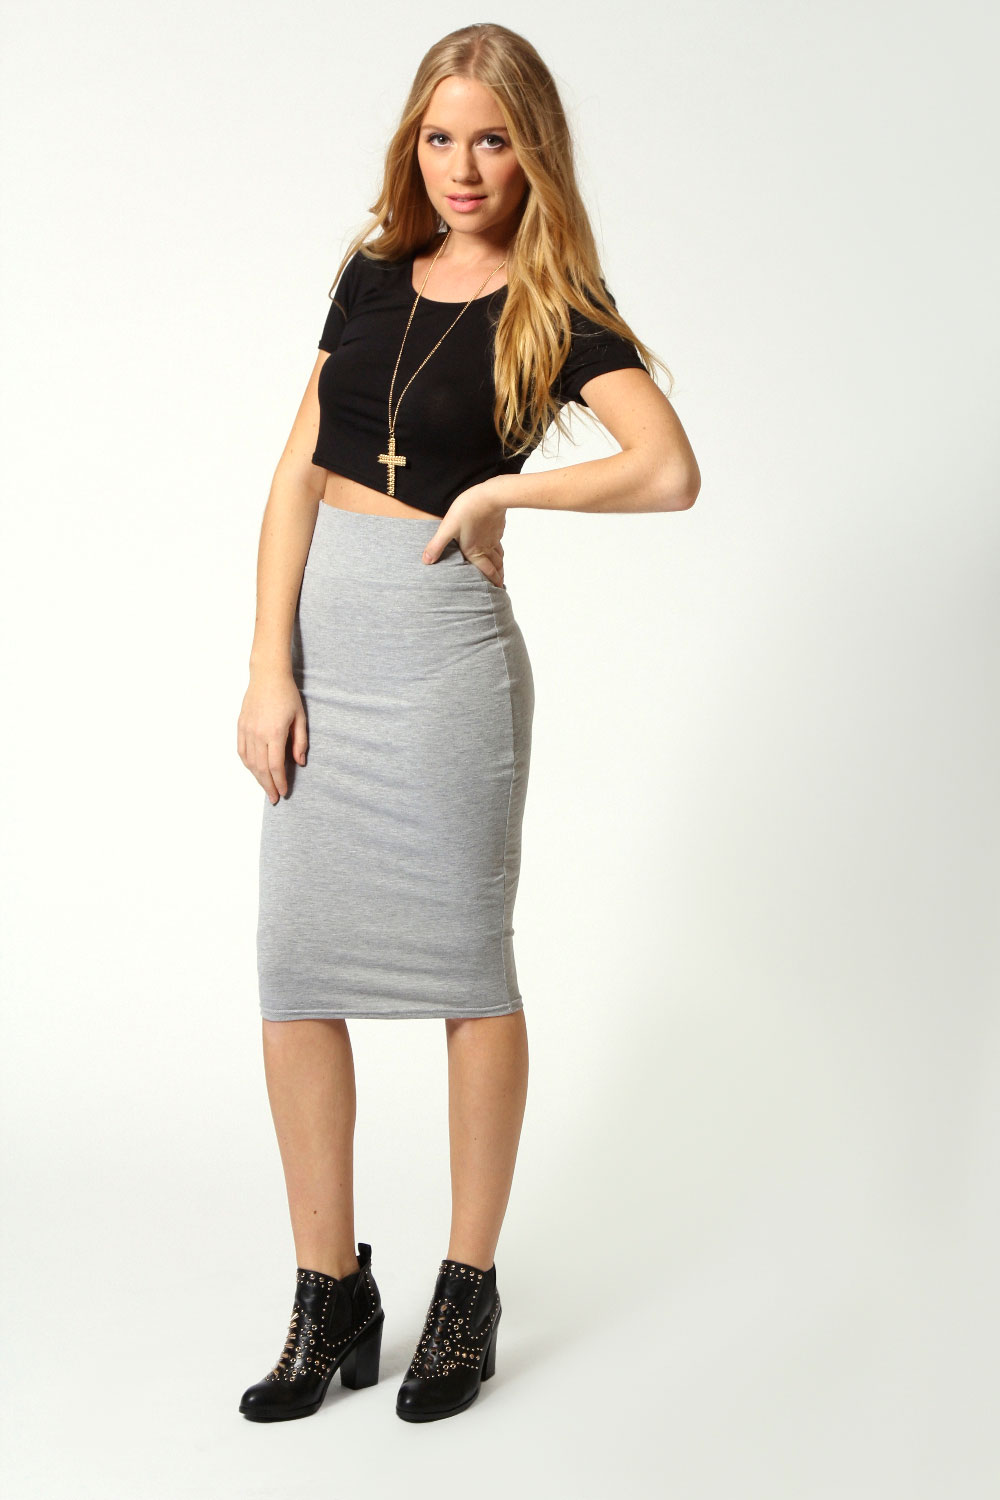 3 looks 1 item the bodycon midi skirt by emmanuella